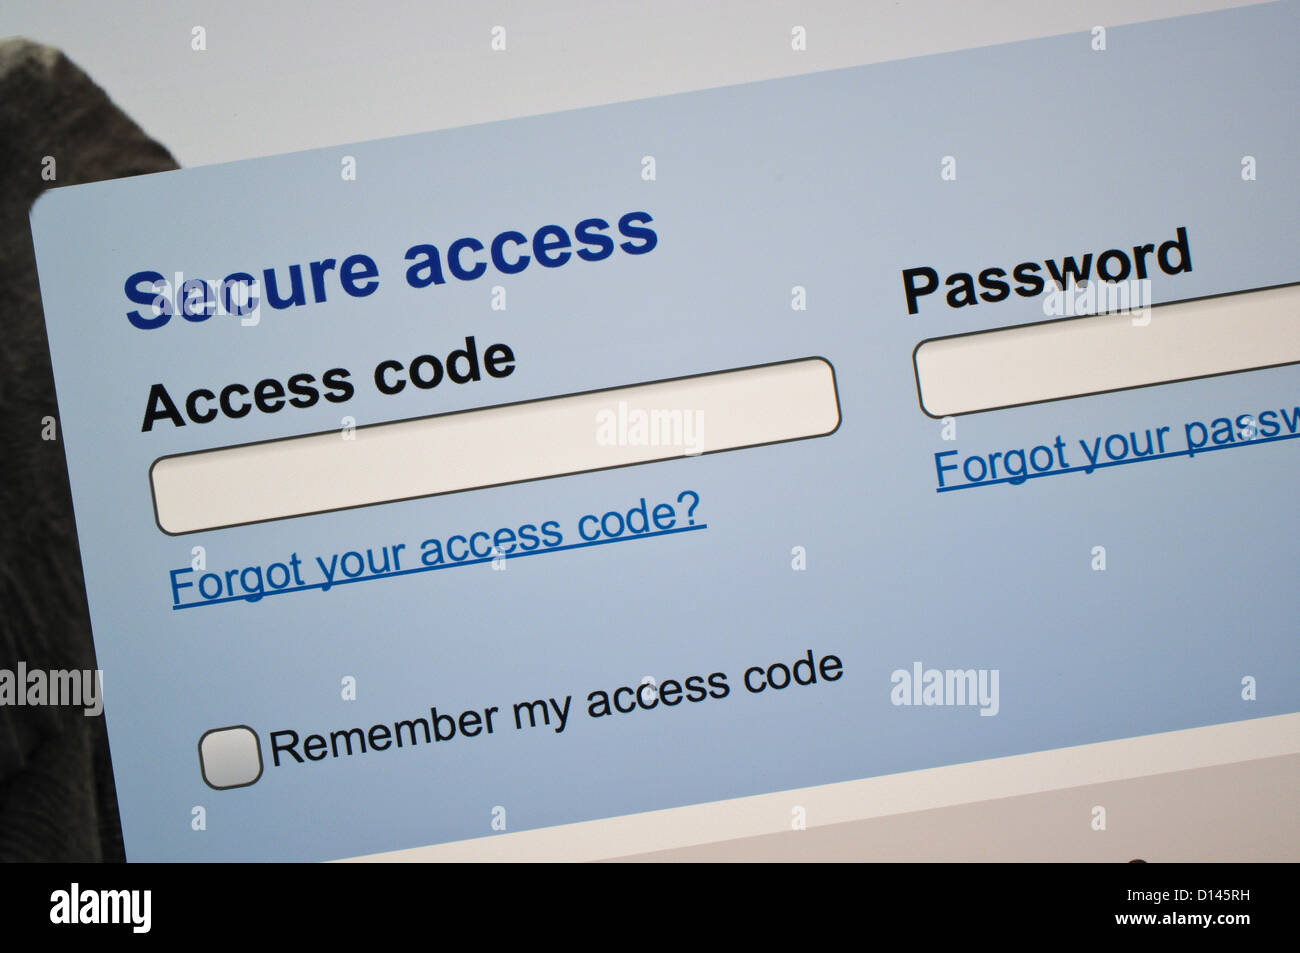 Secure access log-in web page - Stock Image